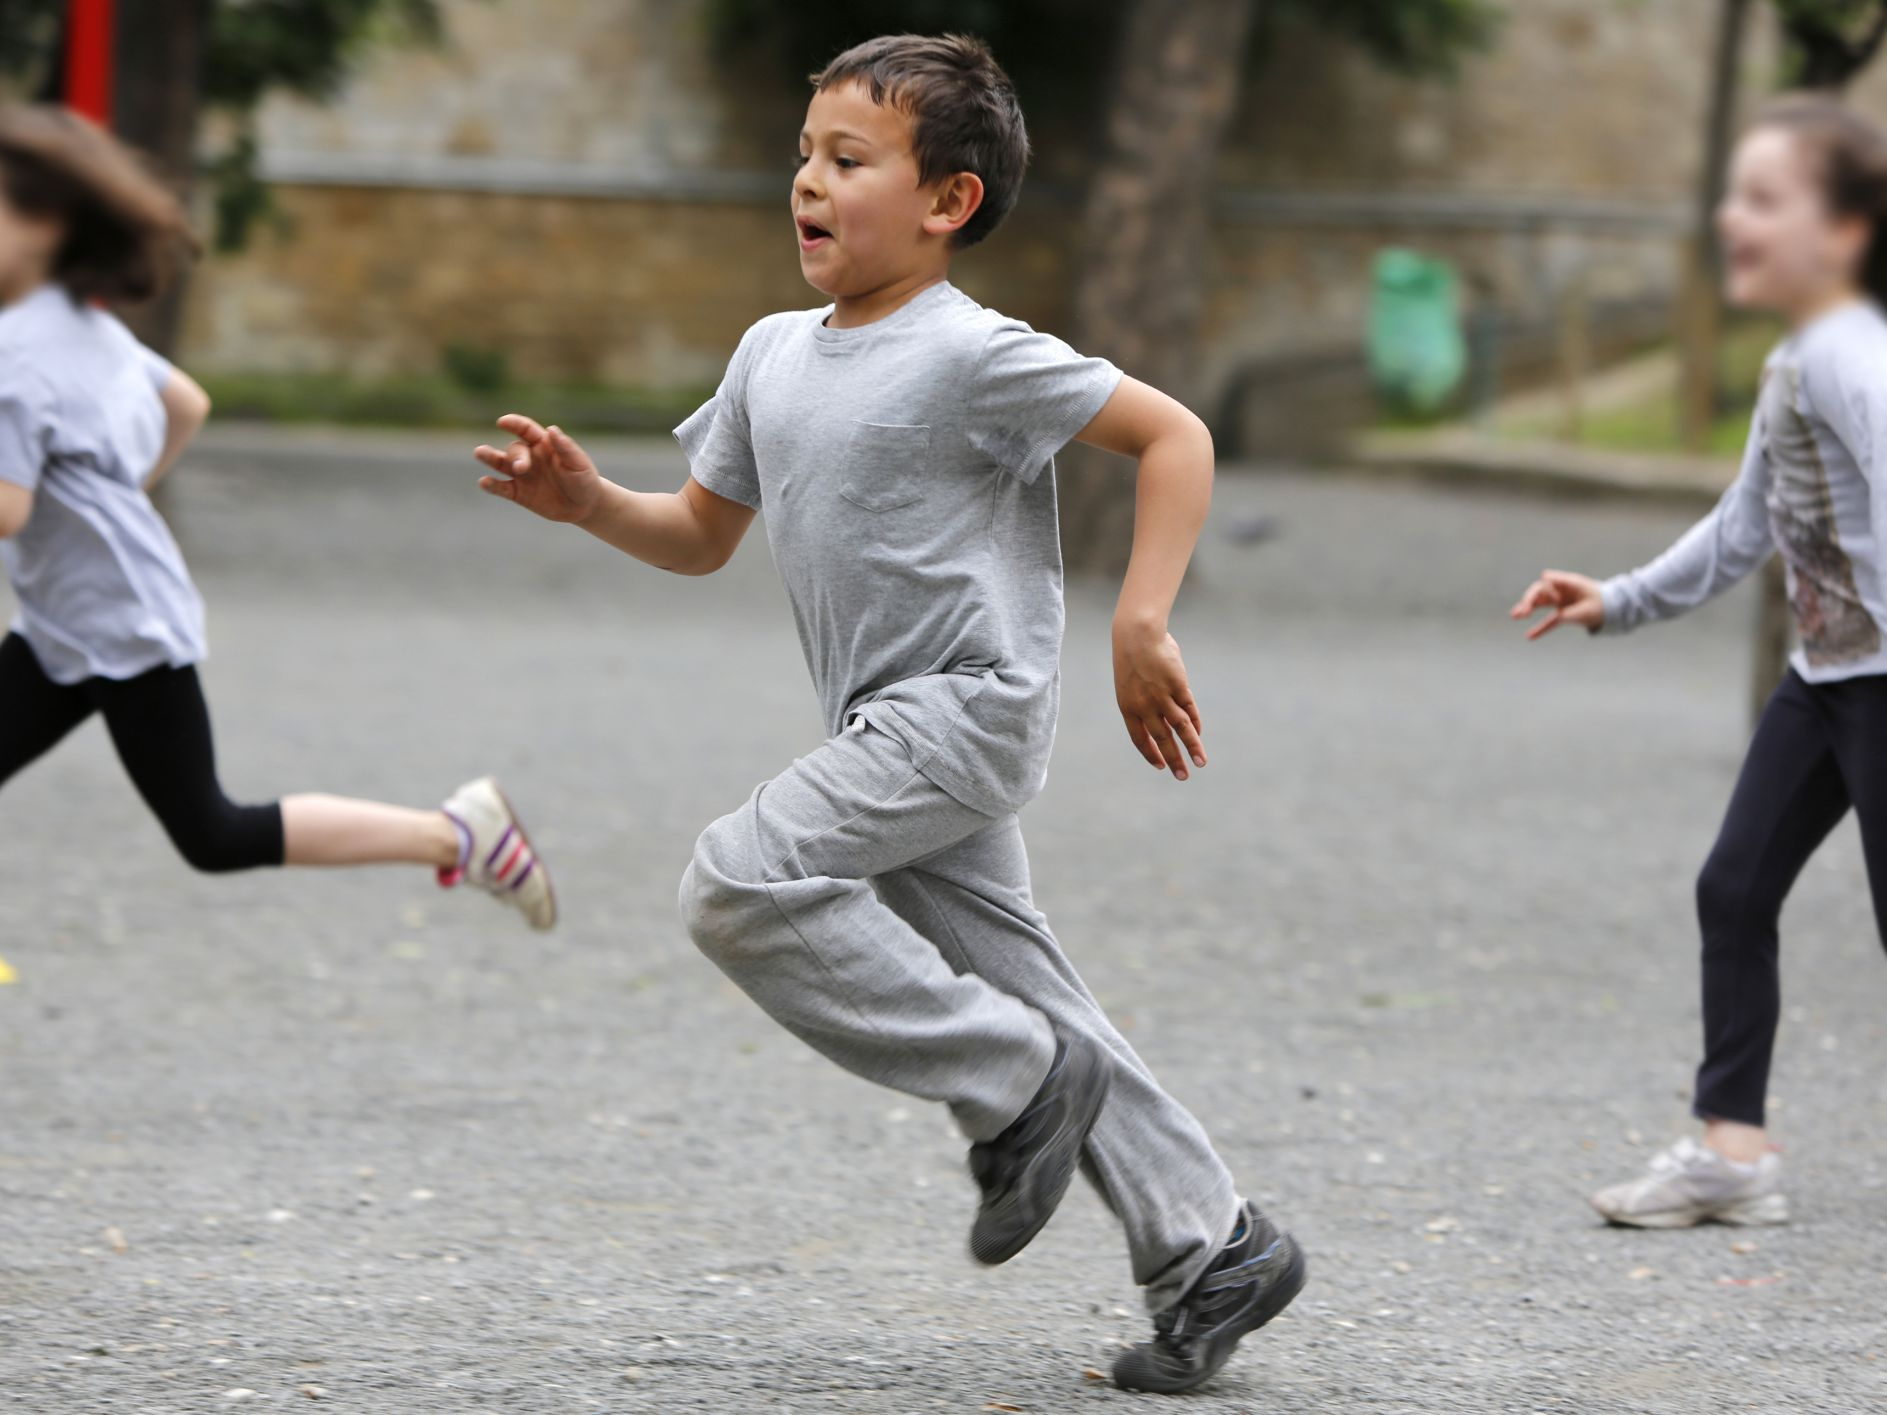 Easy And Simple Exercises For Kids